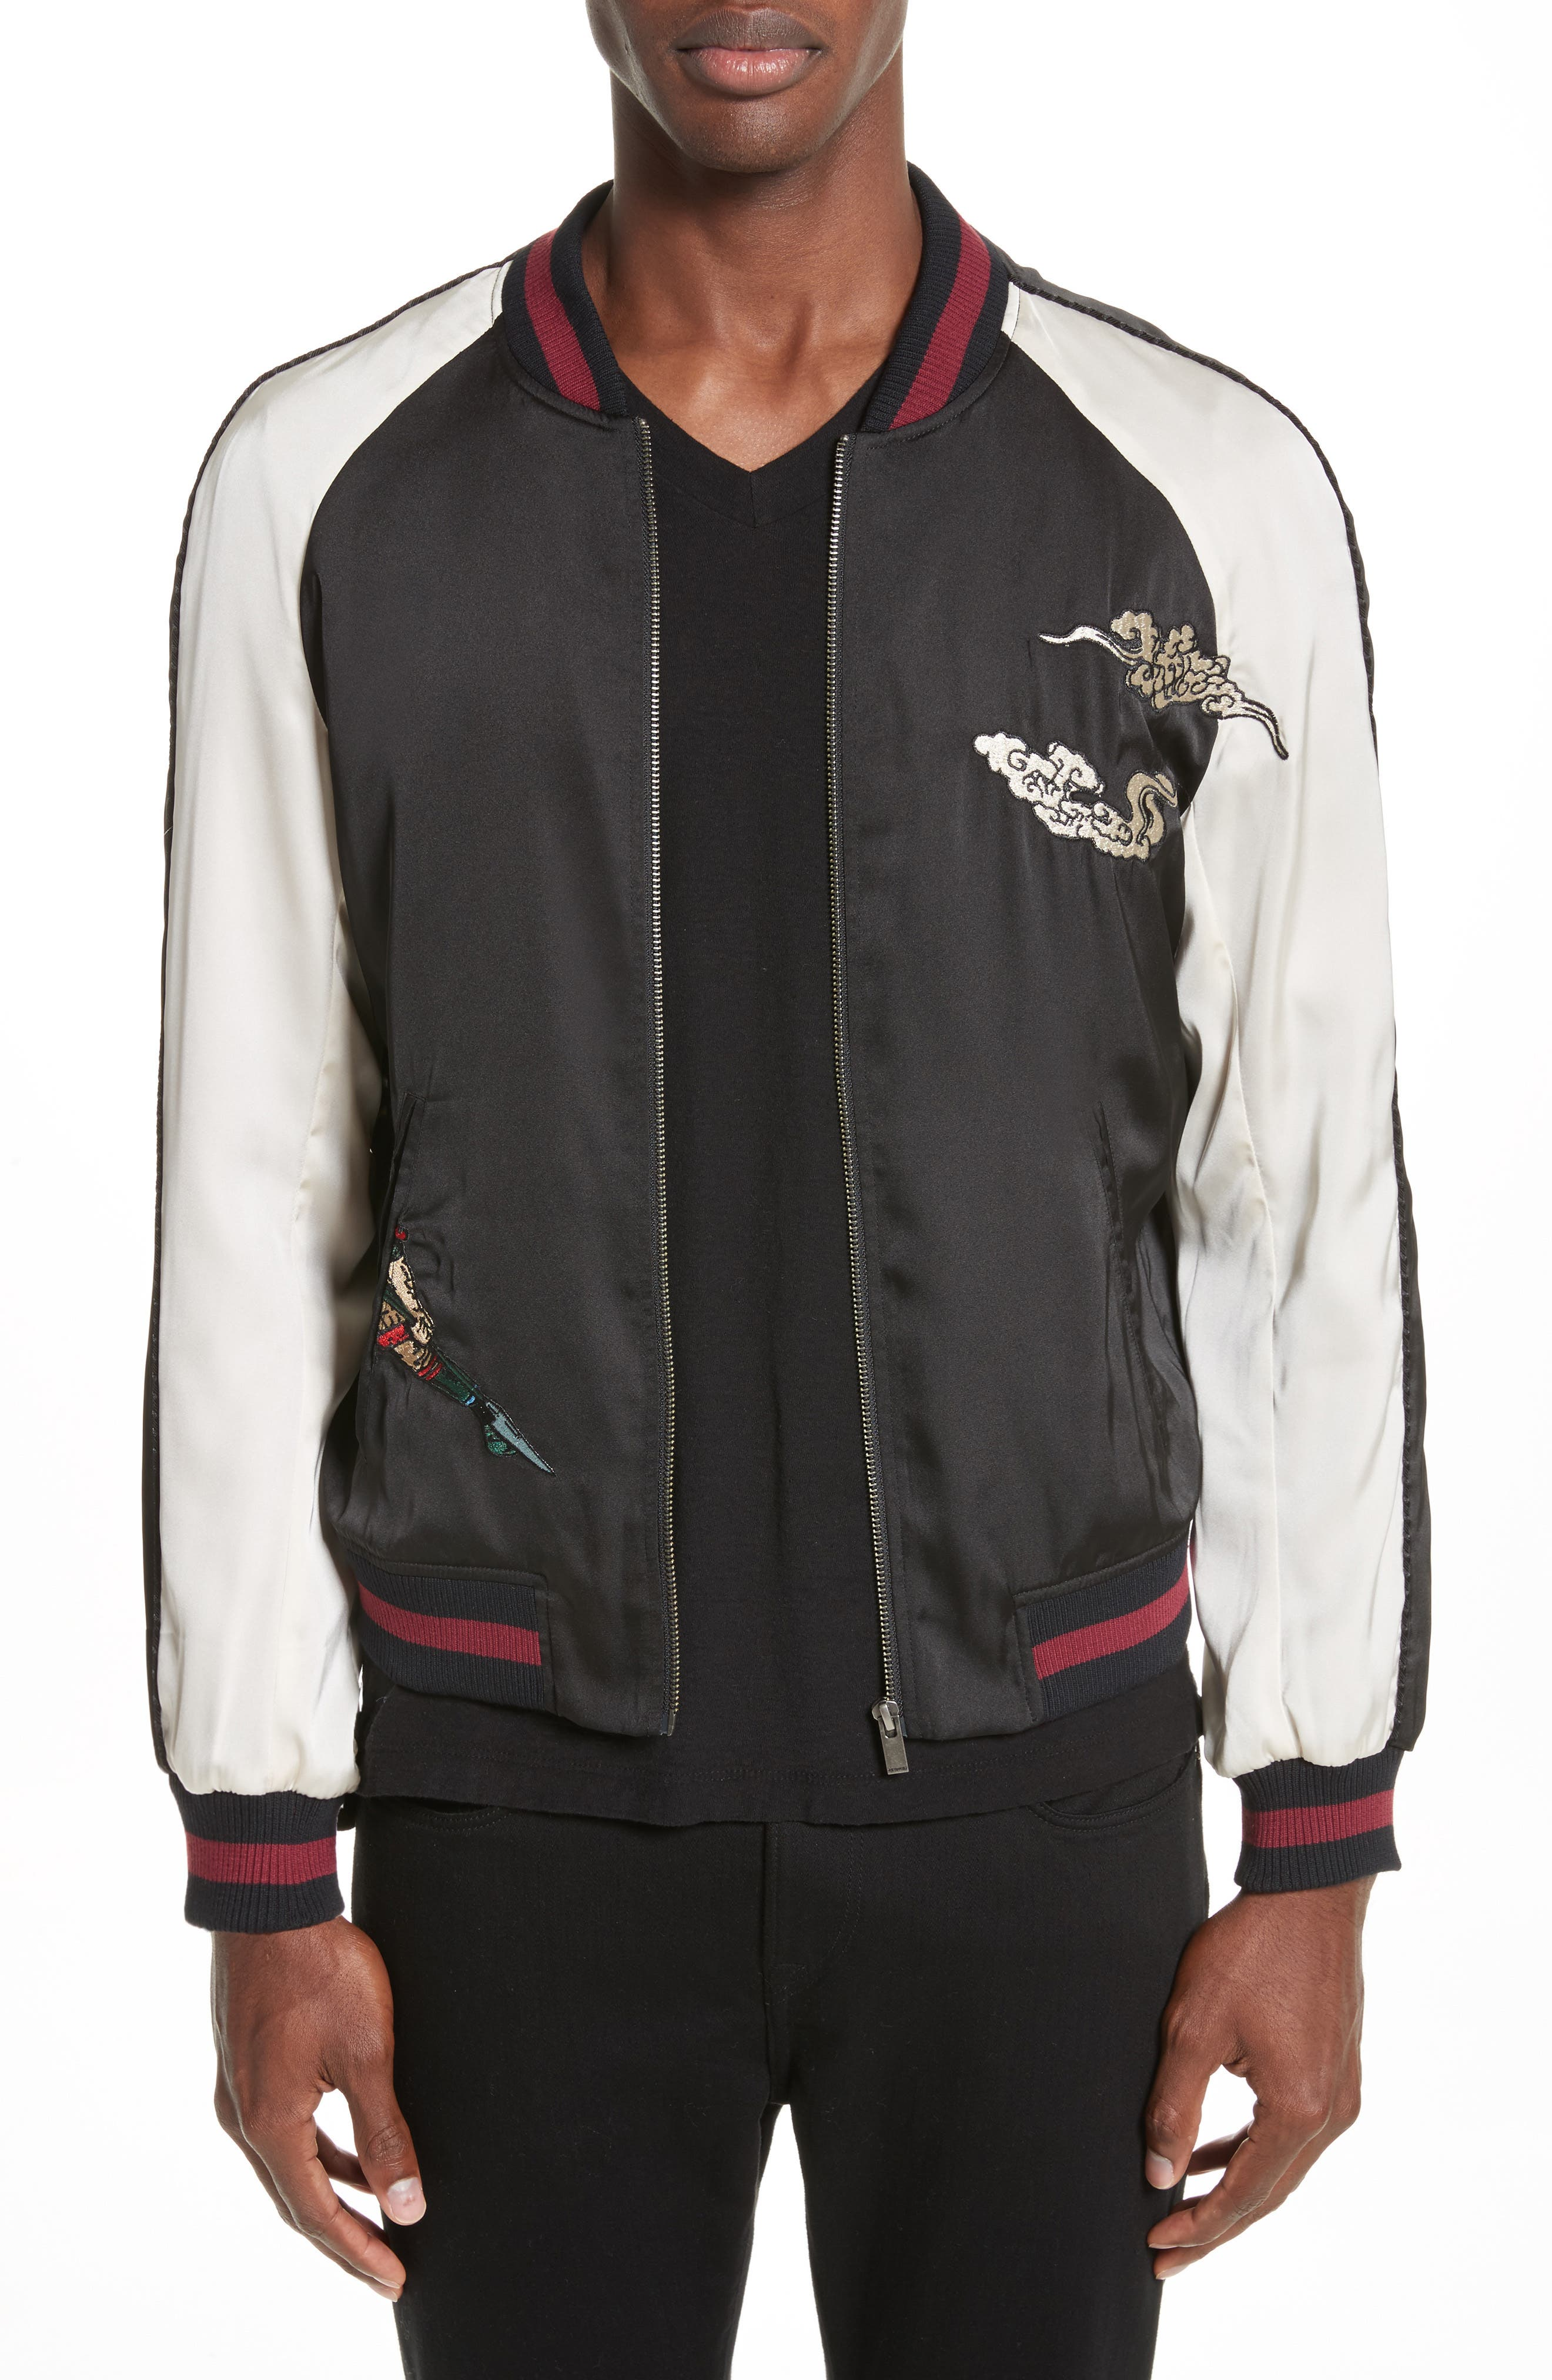 Main Image - The Kooples Embroidered Two-Tone Bomber Jacket